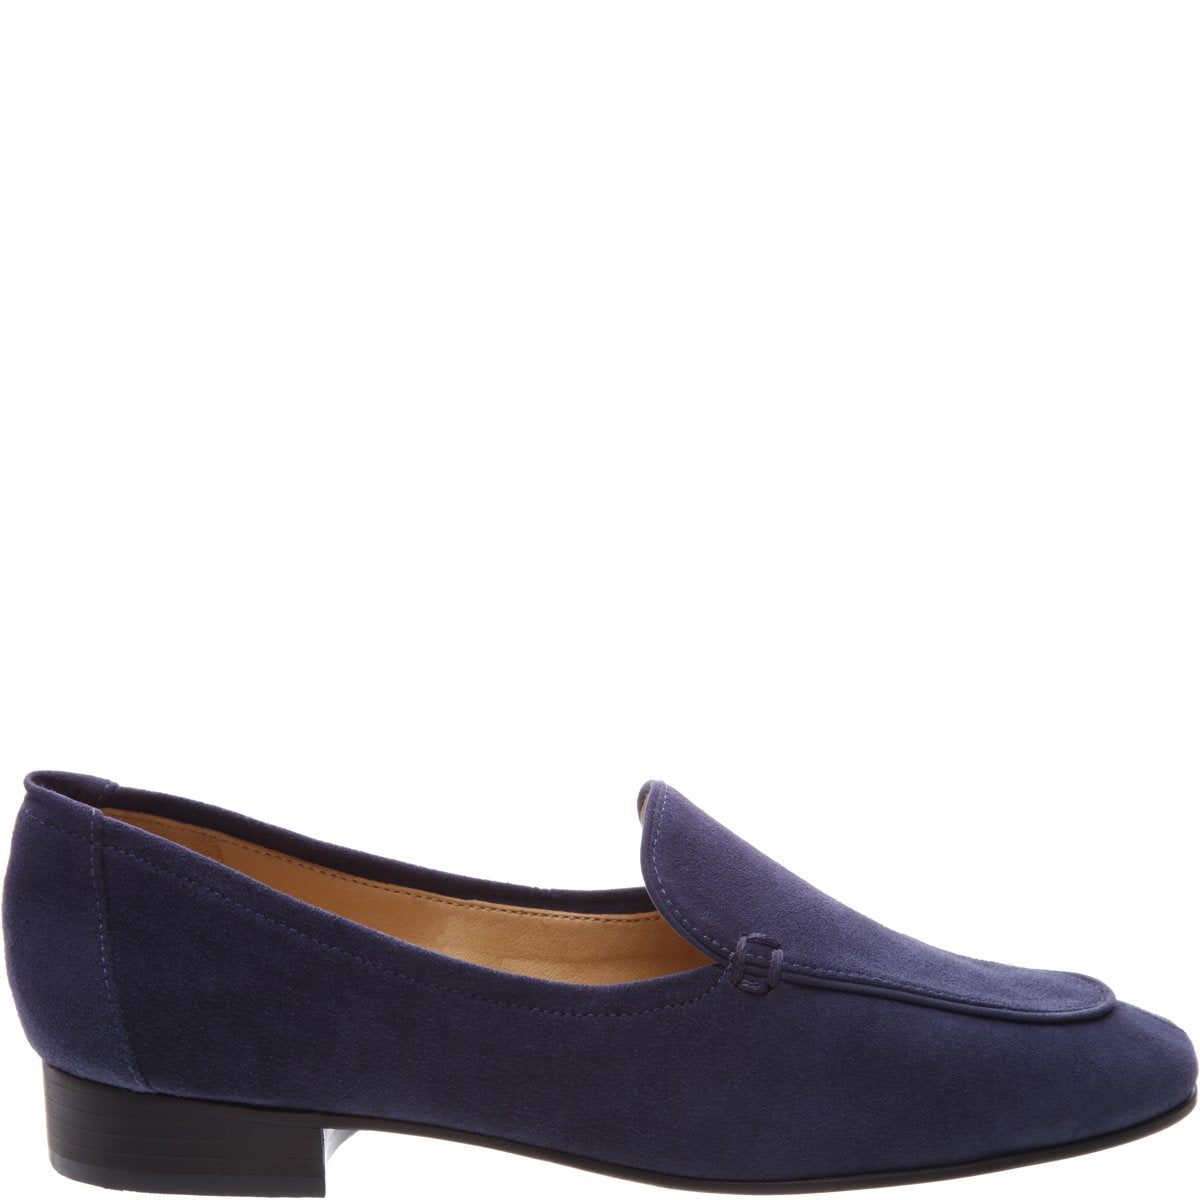 Shania Loafer Flat - Sailfish Blue Suede